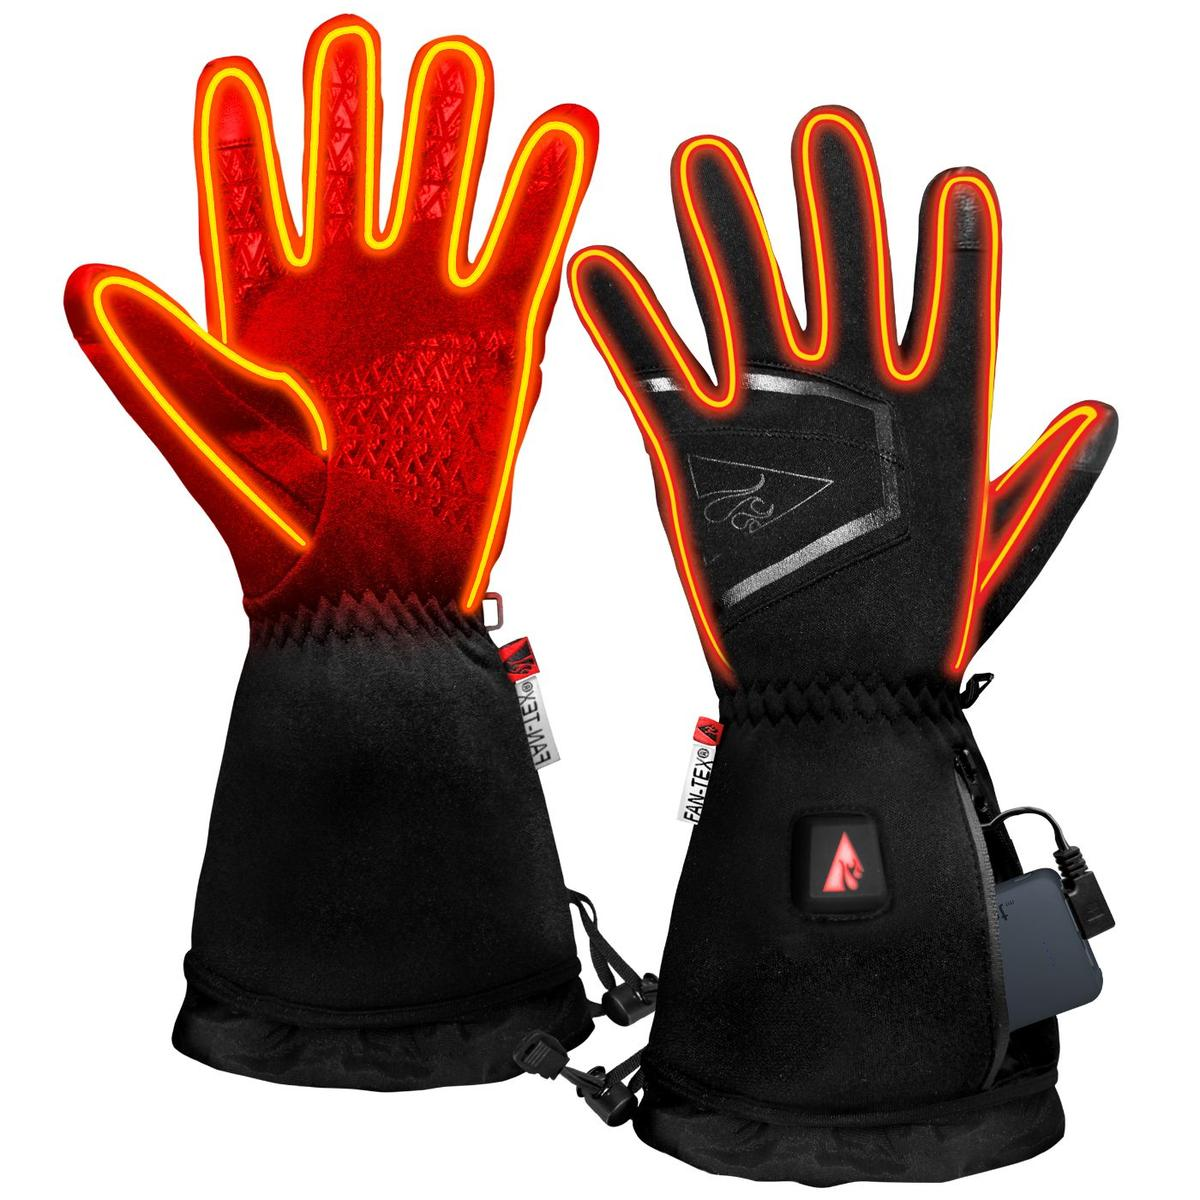 ActionHeat 5V Women's Featherweight Heated Gloves - Back